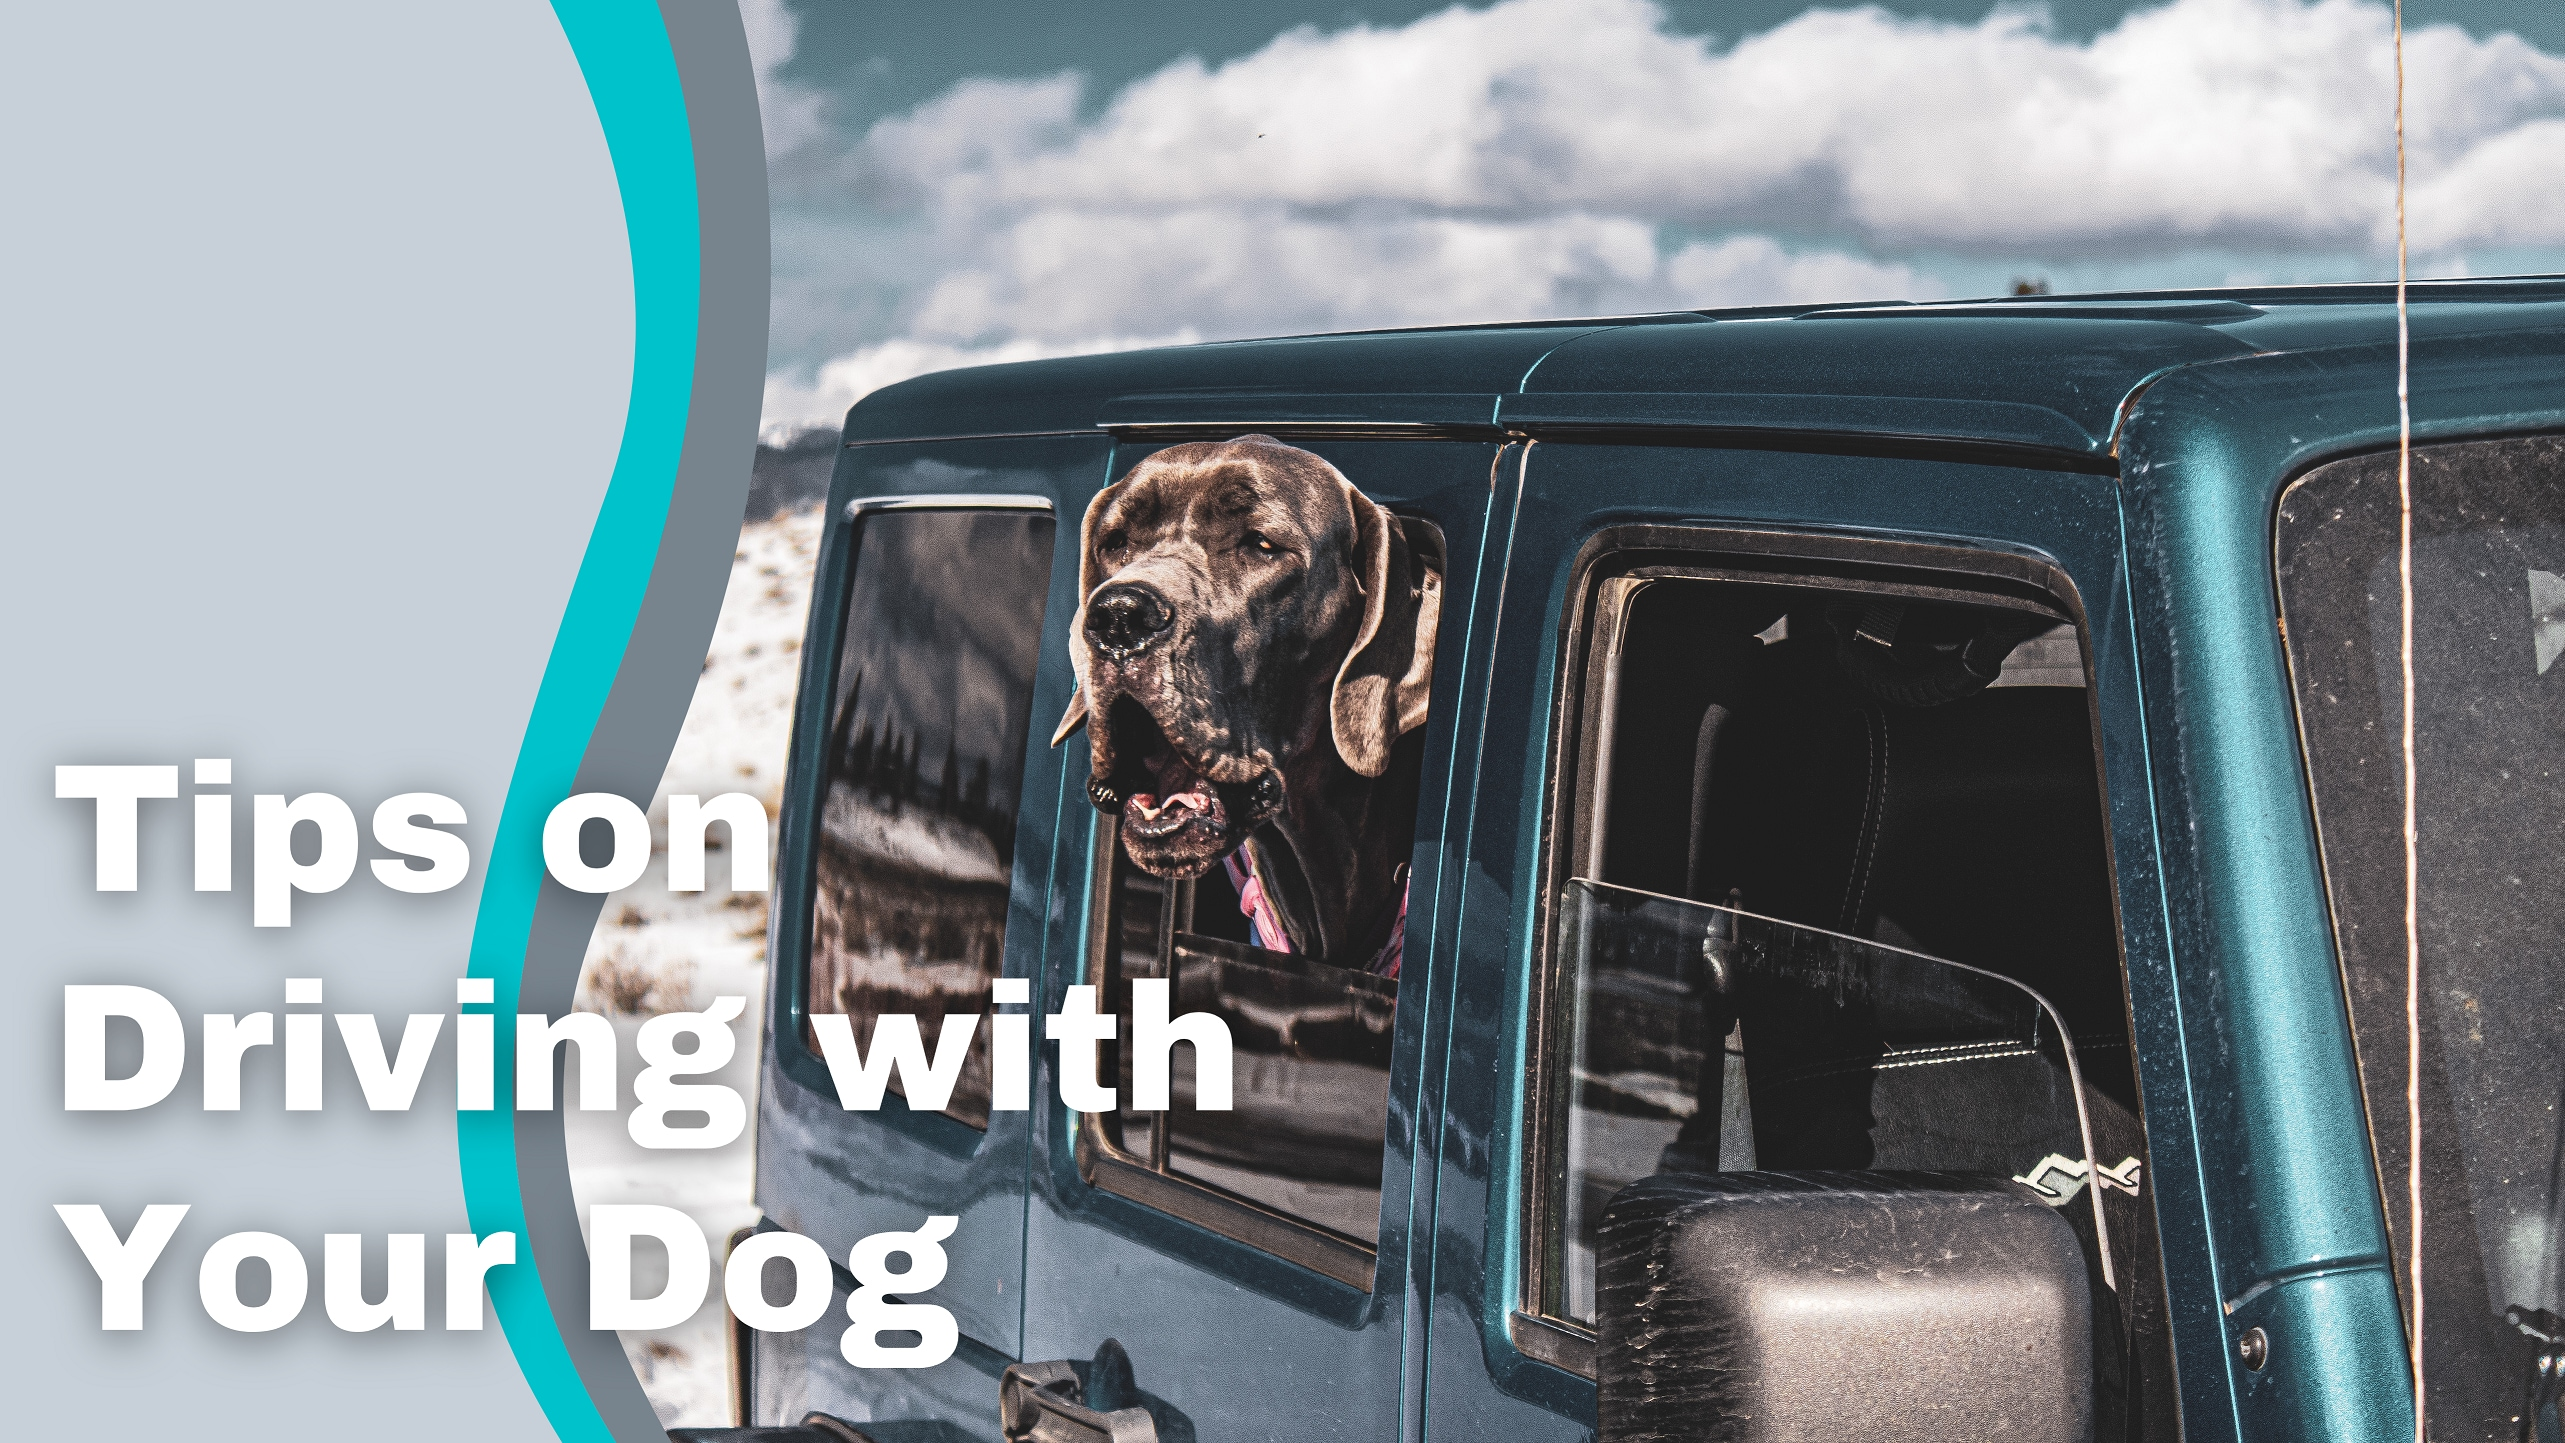 Dog sticking head out of teal Jeep window